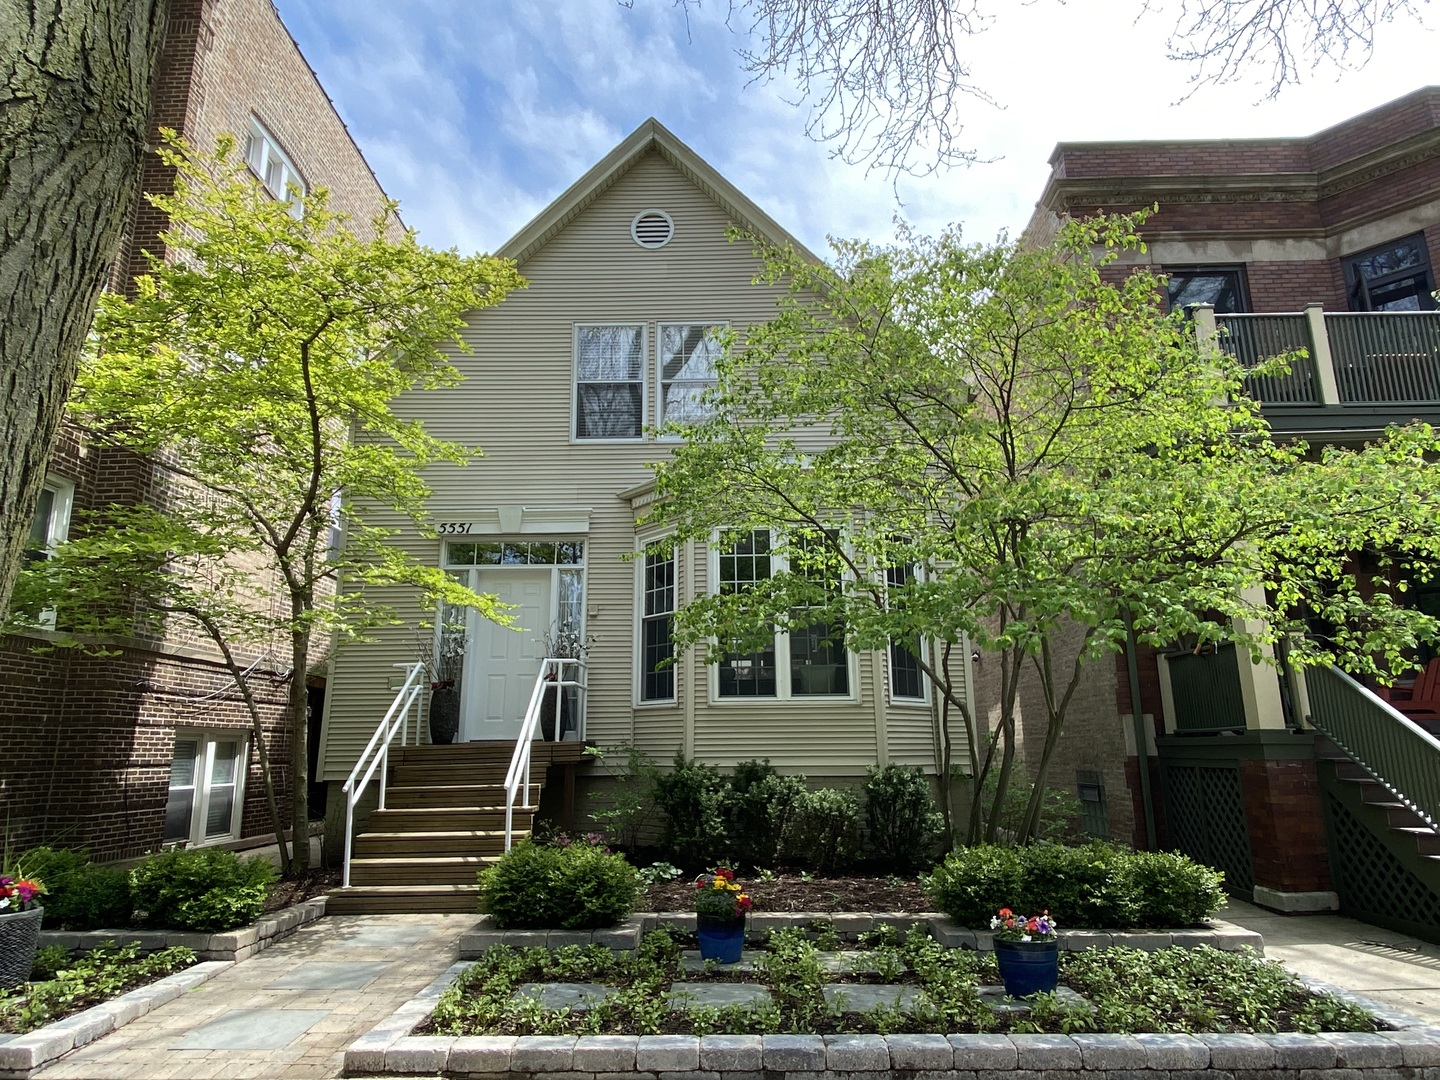 5551 North Glenwood Avenue, one of homes for sale in Chicago Uptown